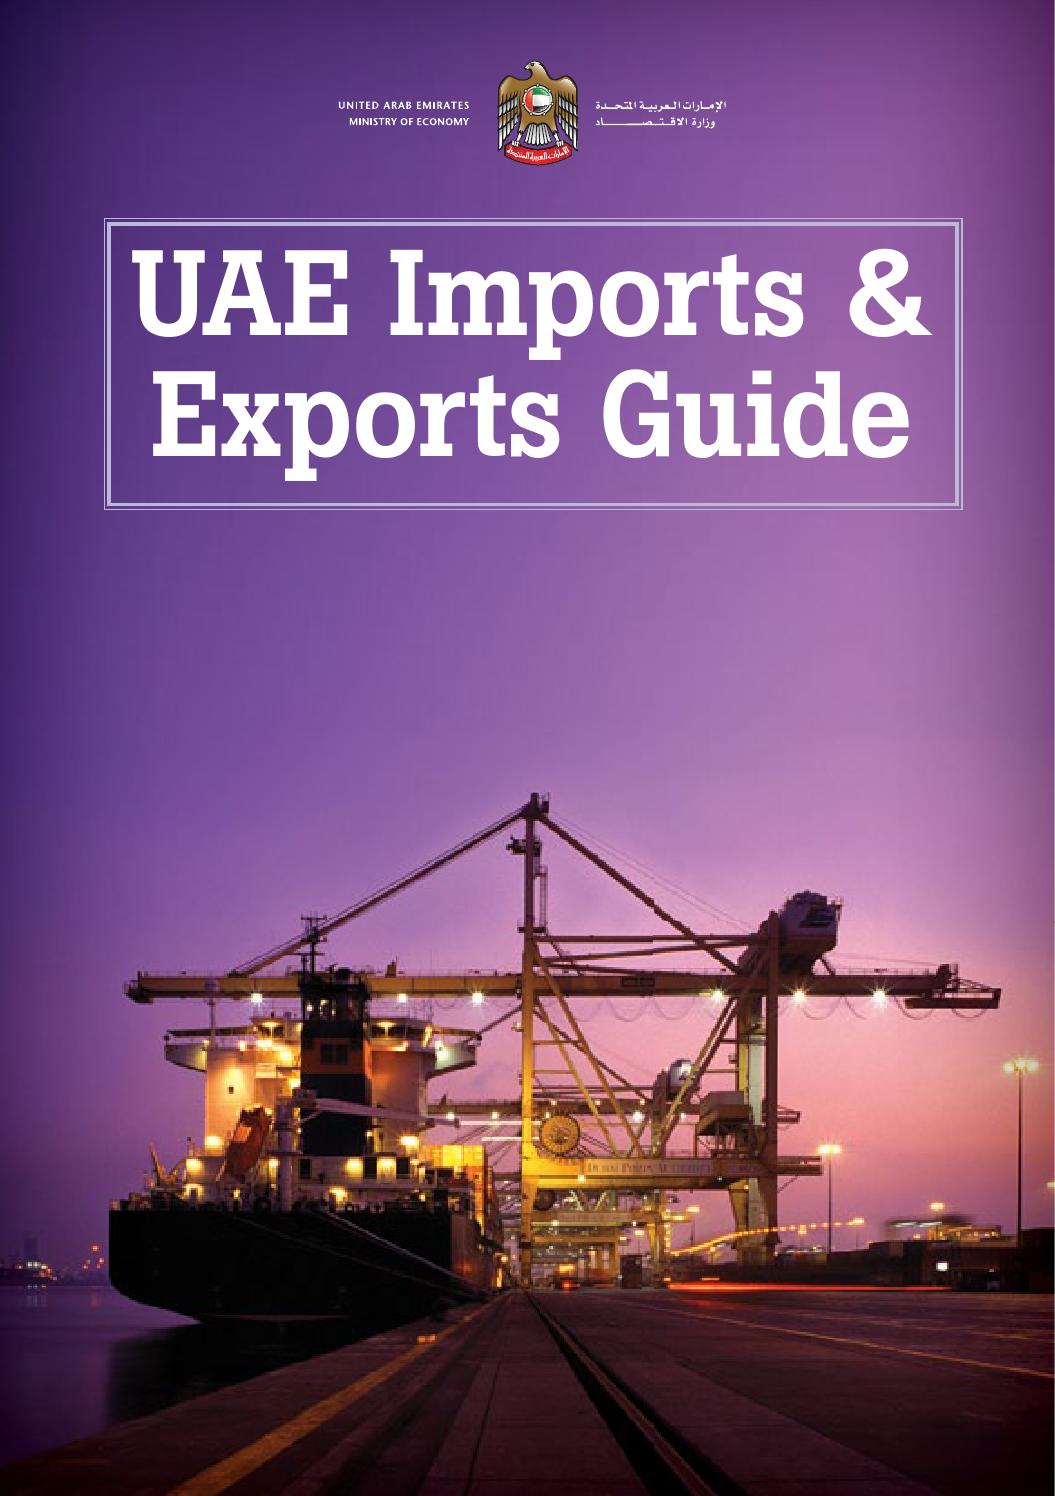 UAE Imports & Exports Guide by Motivate Publishing - issuu